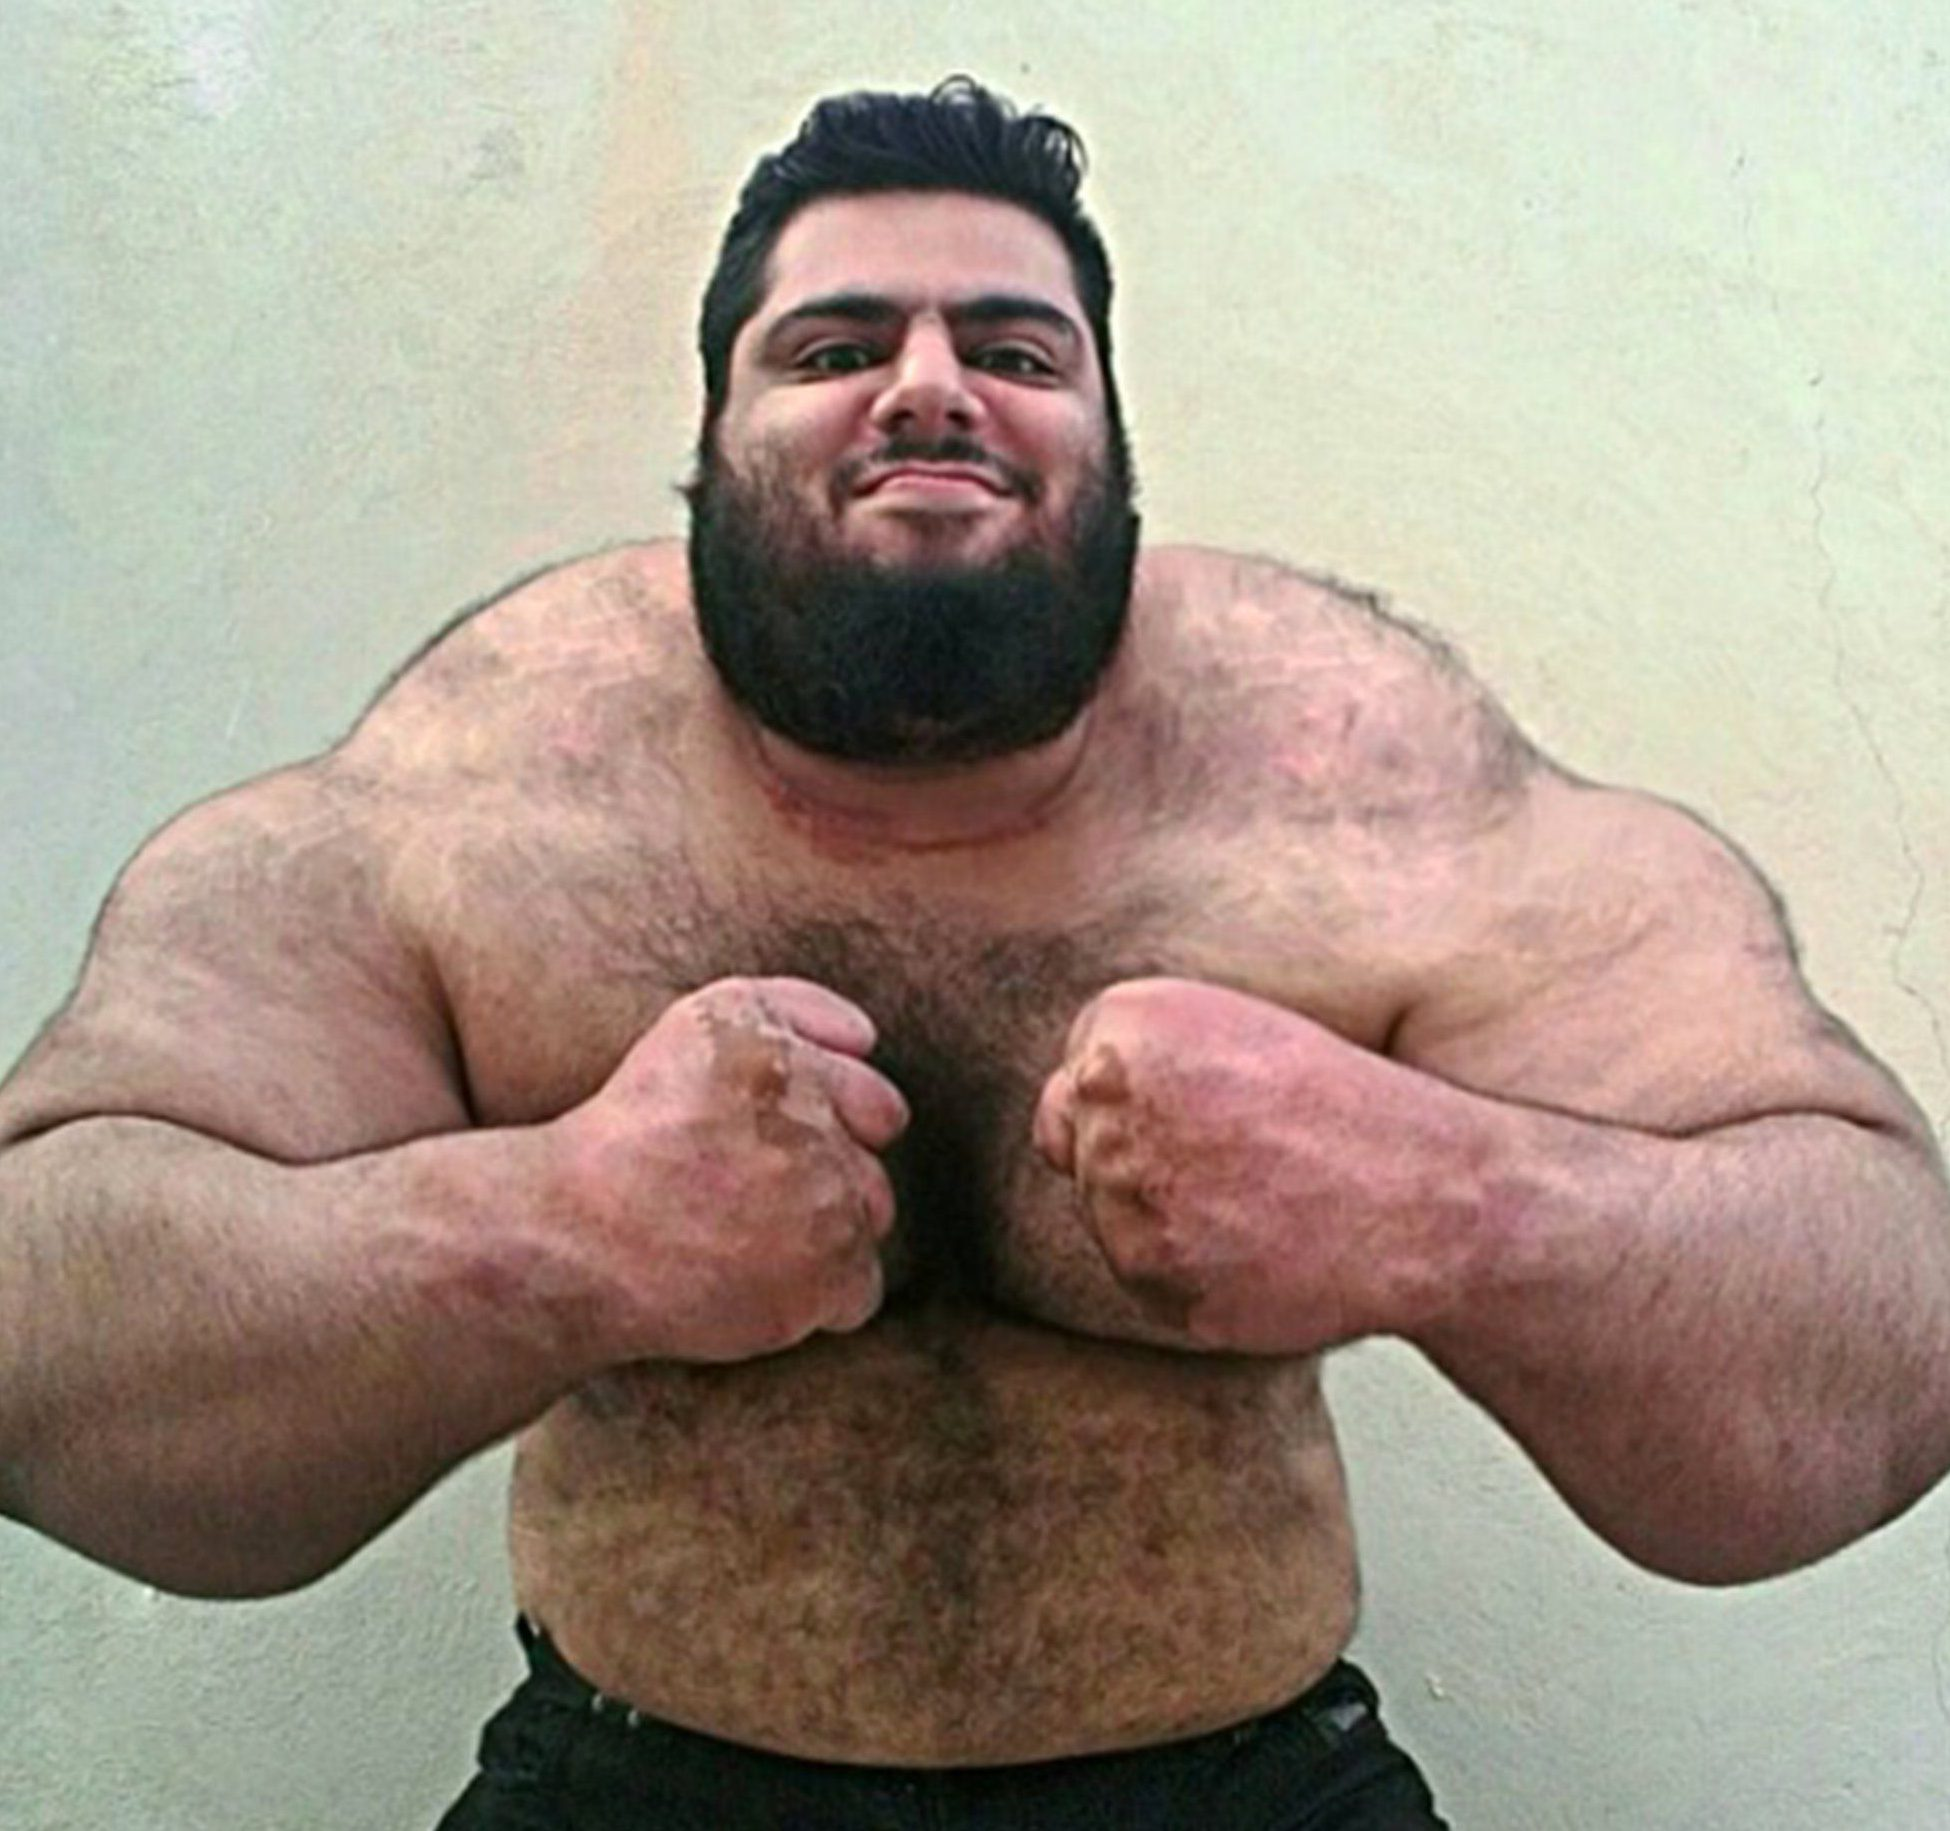 Pic shows: Saraj Gharibi. This is the Persian Hercules or Iranian Hulk, a huge weightlifter from Iran who is astounding social media with his sheer physical size. Sajad Gharibi, 24, is from Iran and is said to weigh almost 24 and a half stone, almost all of it muscle. Sajad has a following of over 59,000 followers of Instagram where he posts photos of his day to day life, as well as doing what he does best ñ weightlifting. The enormous man can lift up to 175 Kg (386 lbs), which is more than he weighs in the power lift category of competitions. He has also participated in bodybuilding competitions representing his country. The man is pictured in various images showing his huge frame and bulging muscles, which have earned himself the name of Hulk or Hercules. Since becoming noticed on his social media accounts, the Persian Hercules has become an internet sensation for his indomitable build. In his free time, he also likes to take pictures with objects that look smaller when held next to him. However those who know him assure that despite his grizzly appearance, Sajad has a big heart and is a gentle giant. (ends)